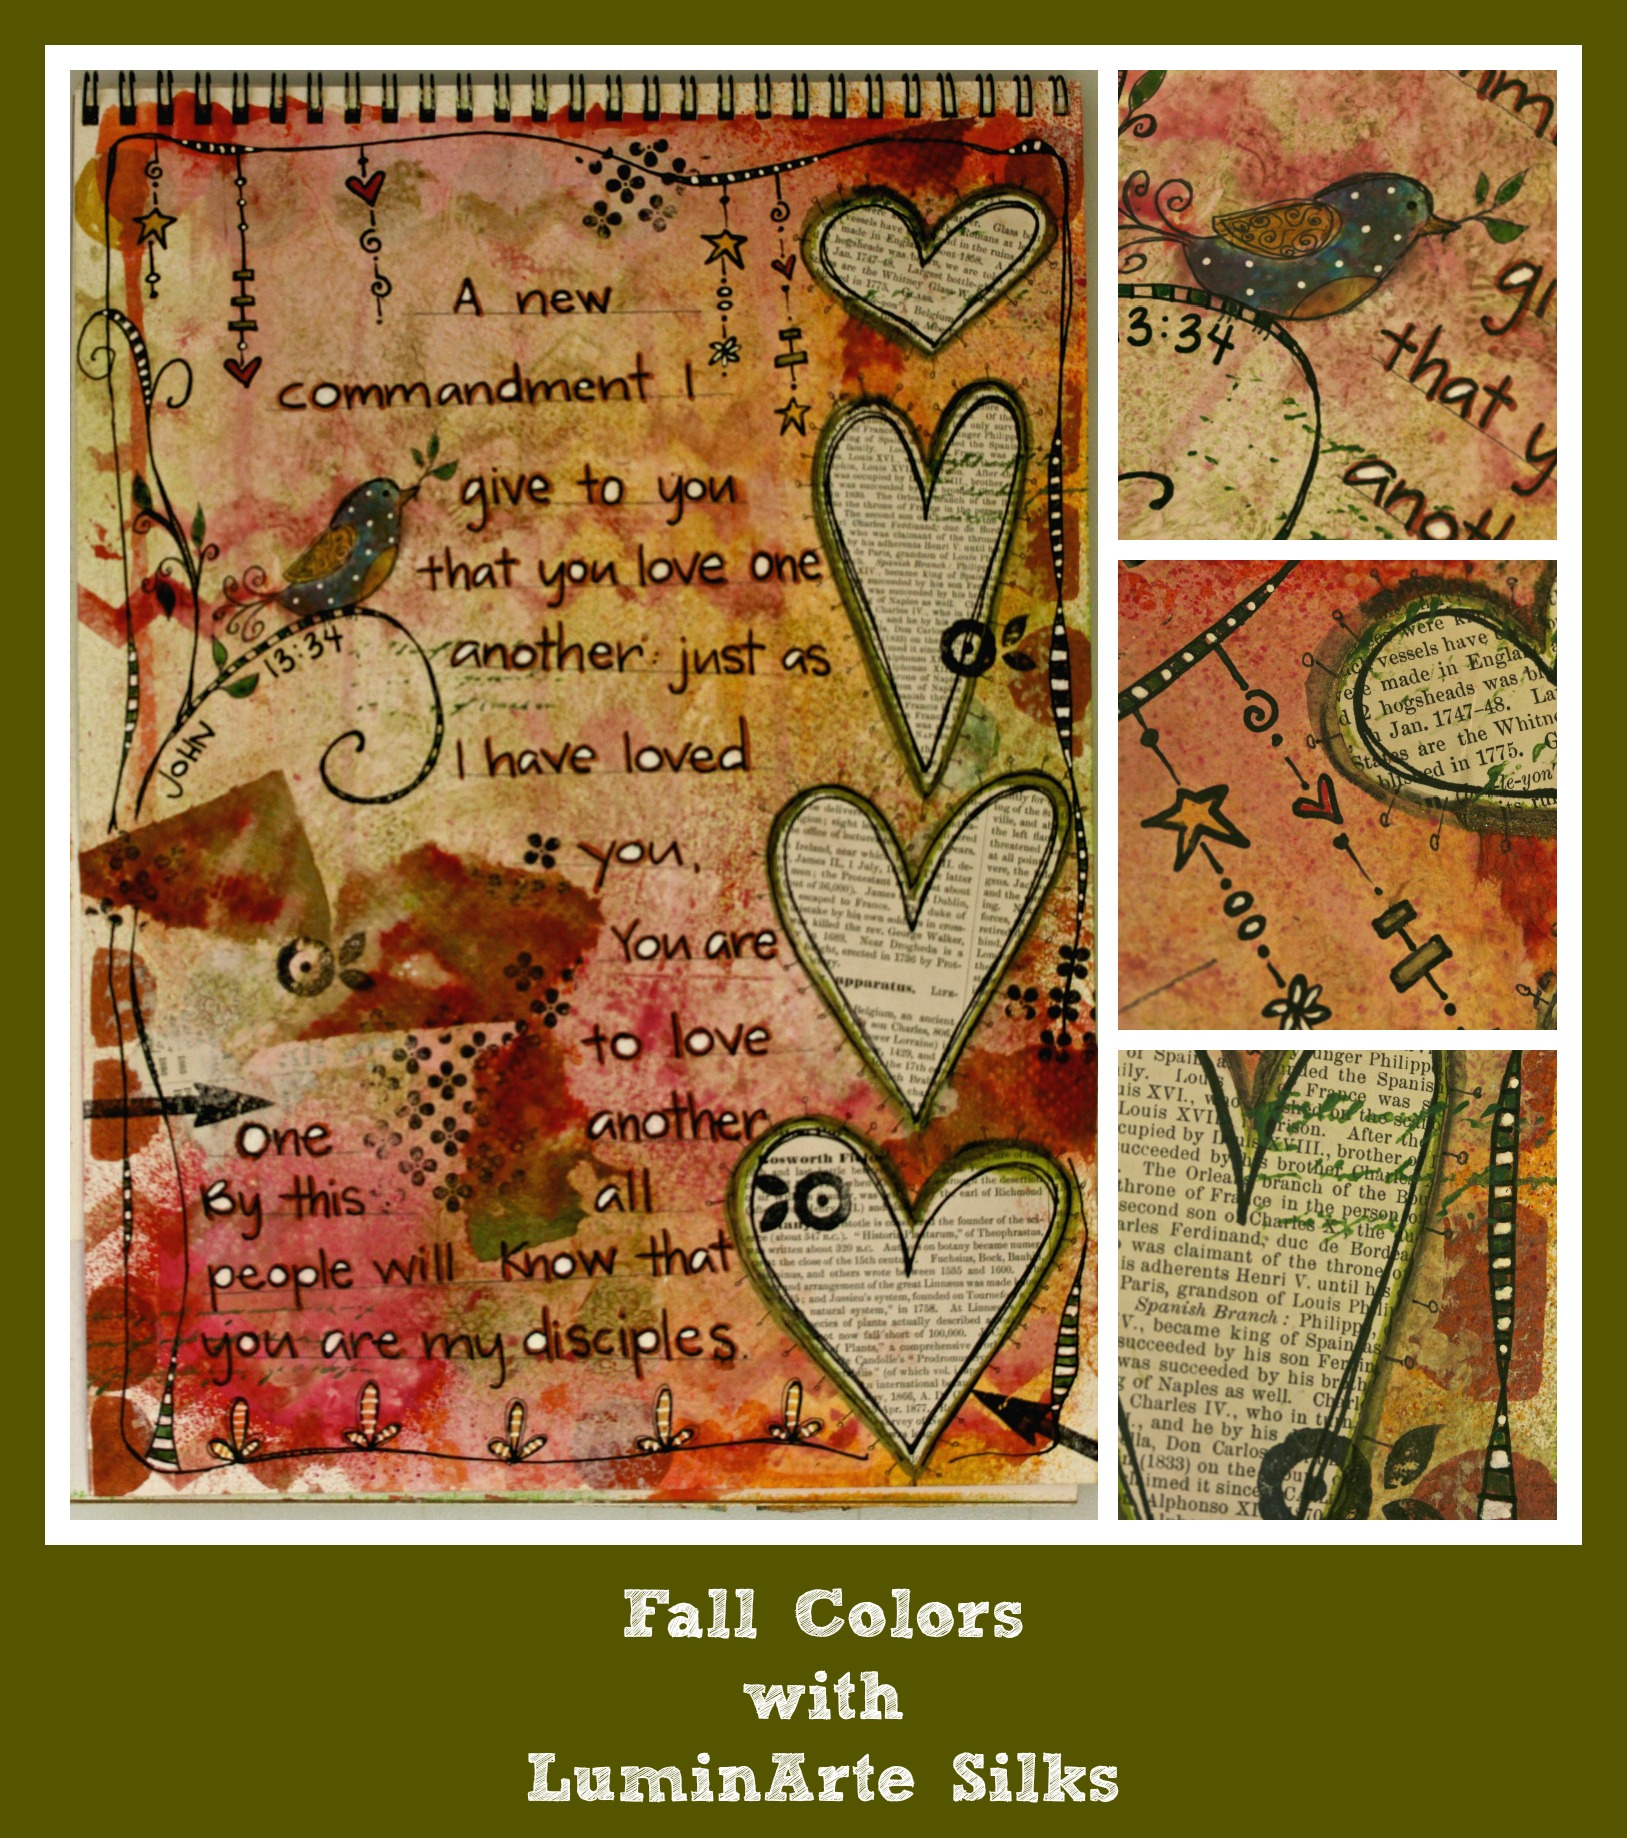 Fall Colors w/LuminArte Silks